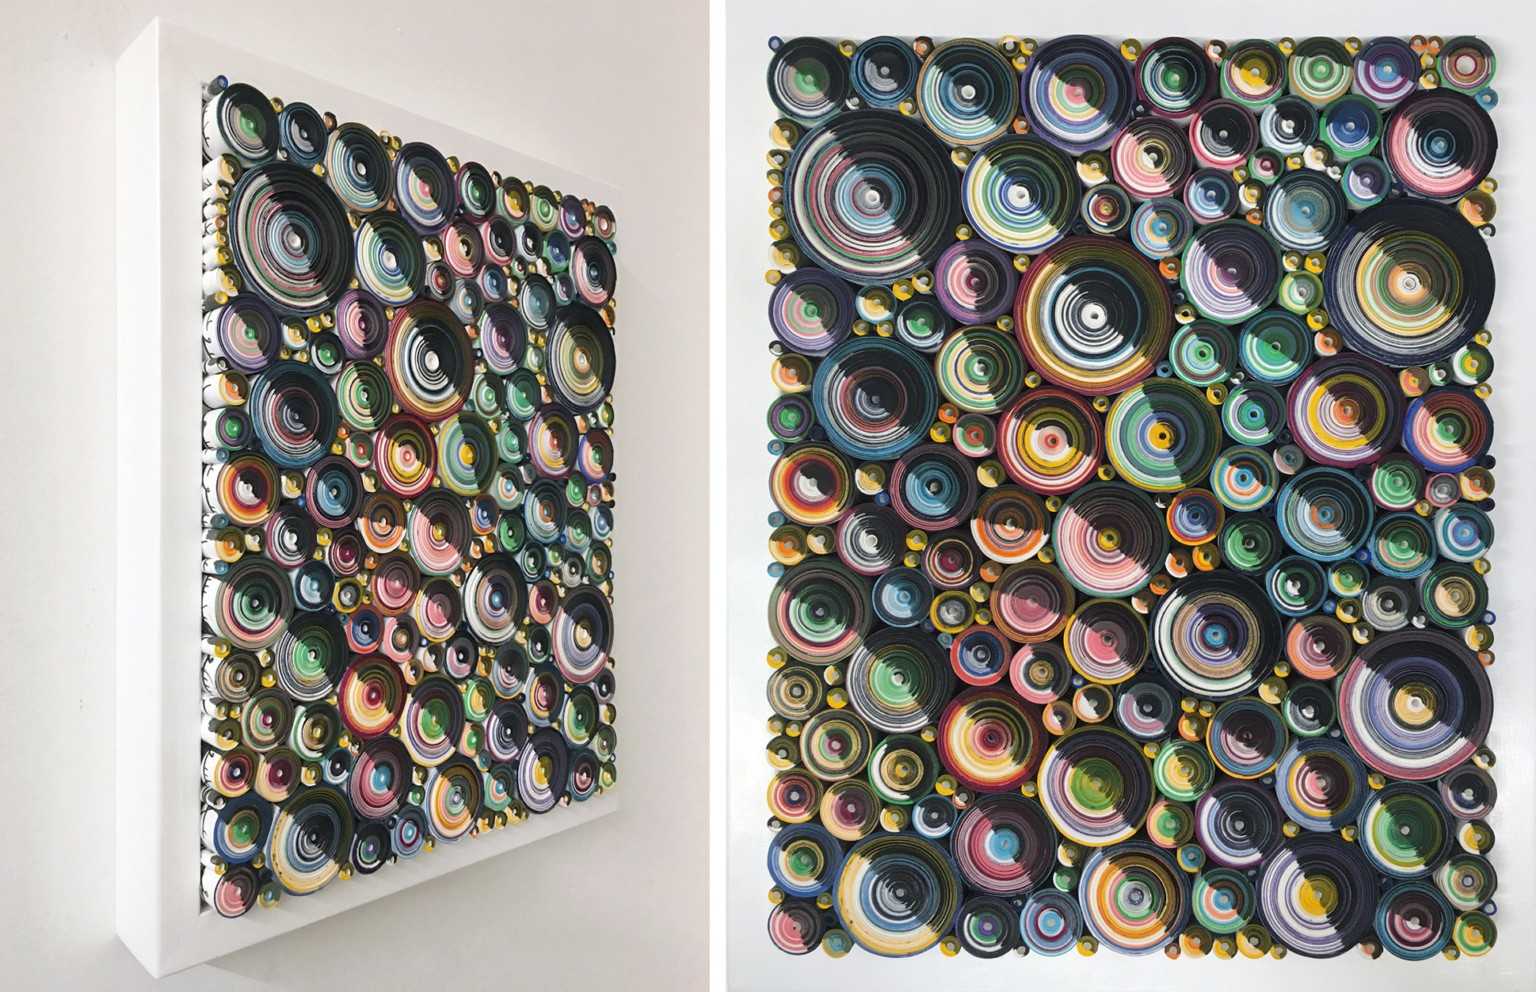 Dizzying Scrolls of Hand-Colored Paper Form Bas-Relief Sculptures by Hadieh Shafie